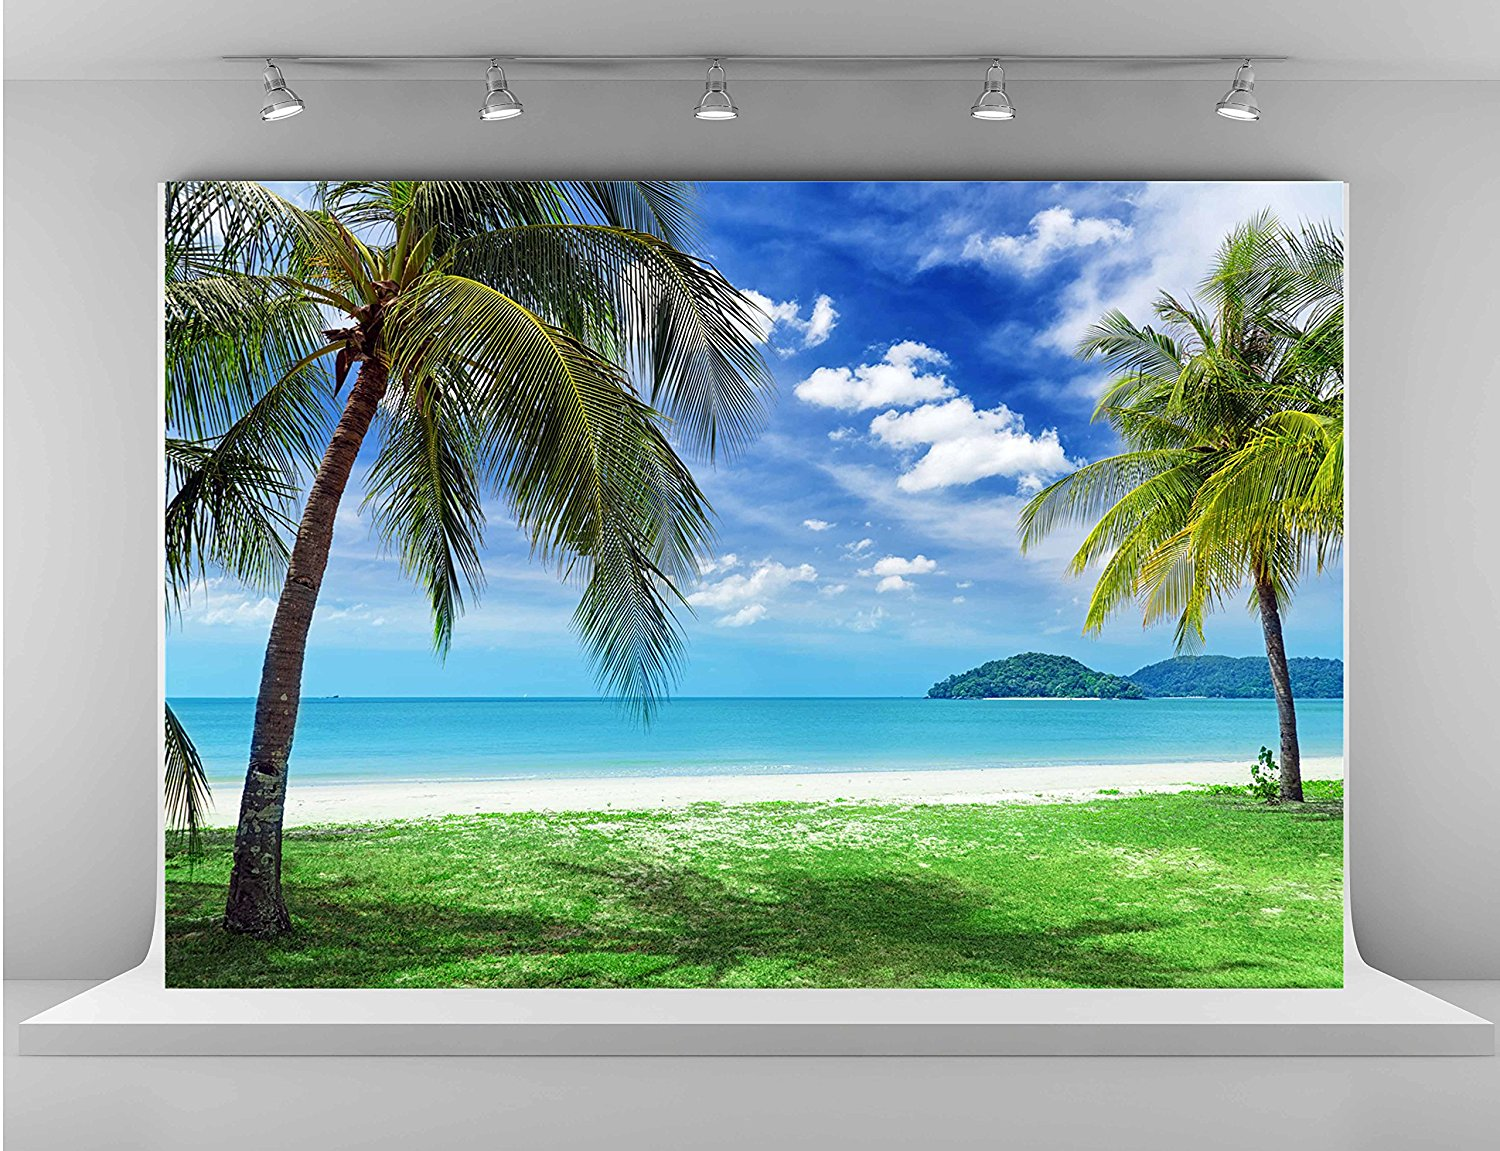 Blue Sky White Clouds Green Tree White Sand Beach background polyester or Vinyl cloth Computer print wall backdrop